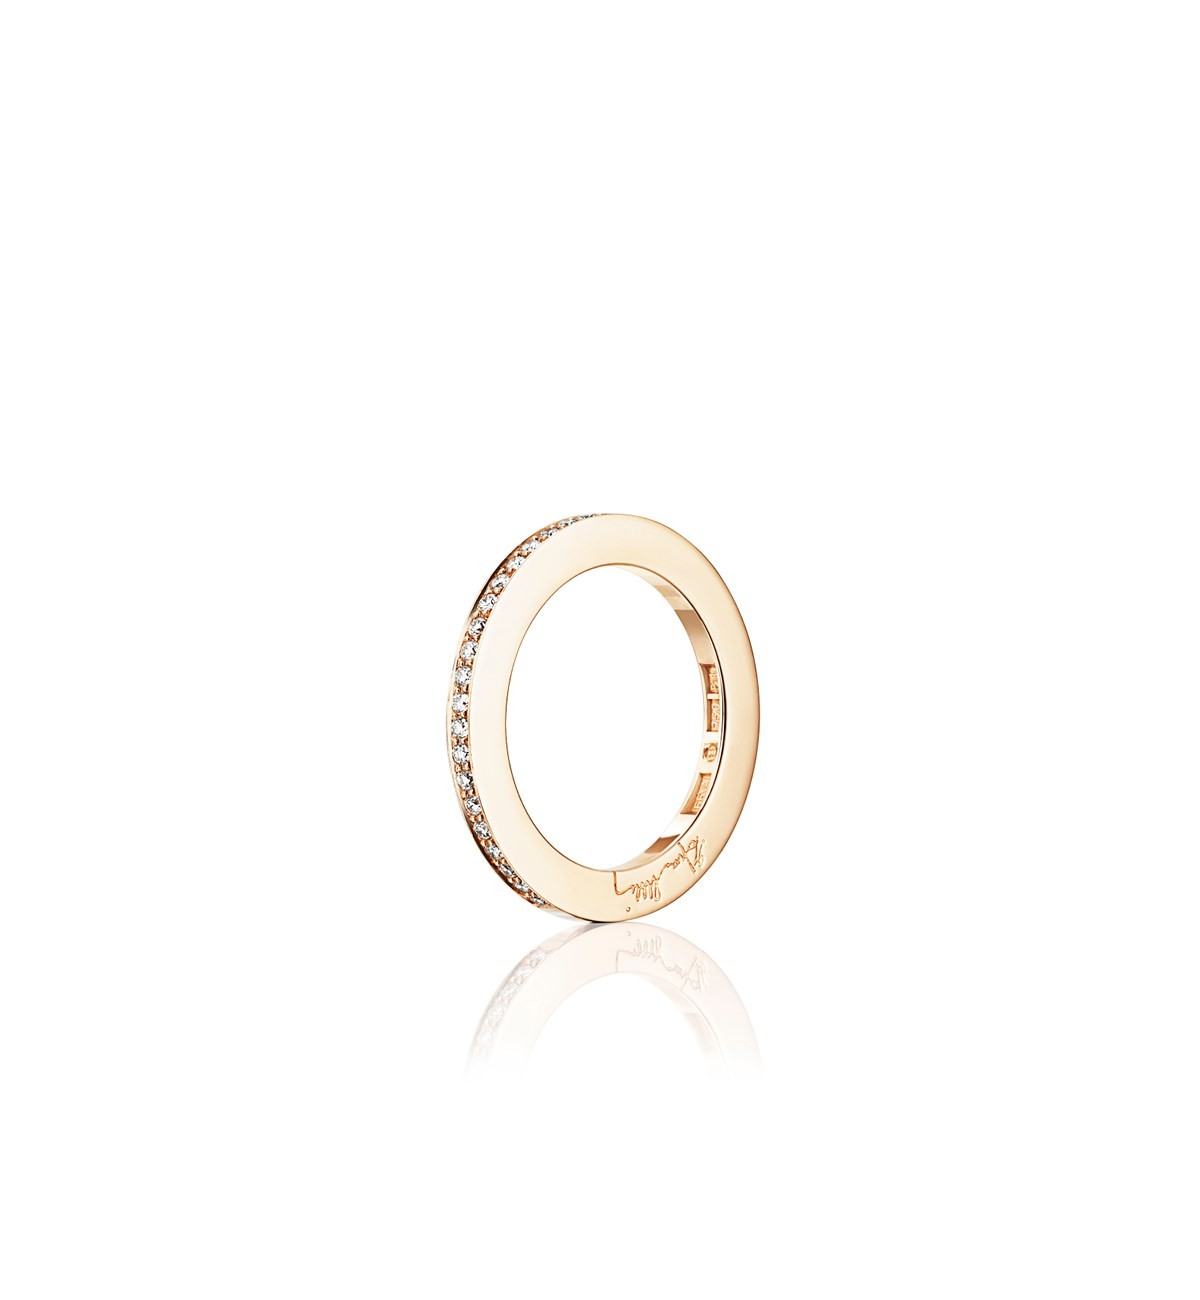 Efva Attling 21 Stars & Signature Ring timanttisormus